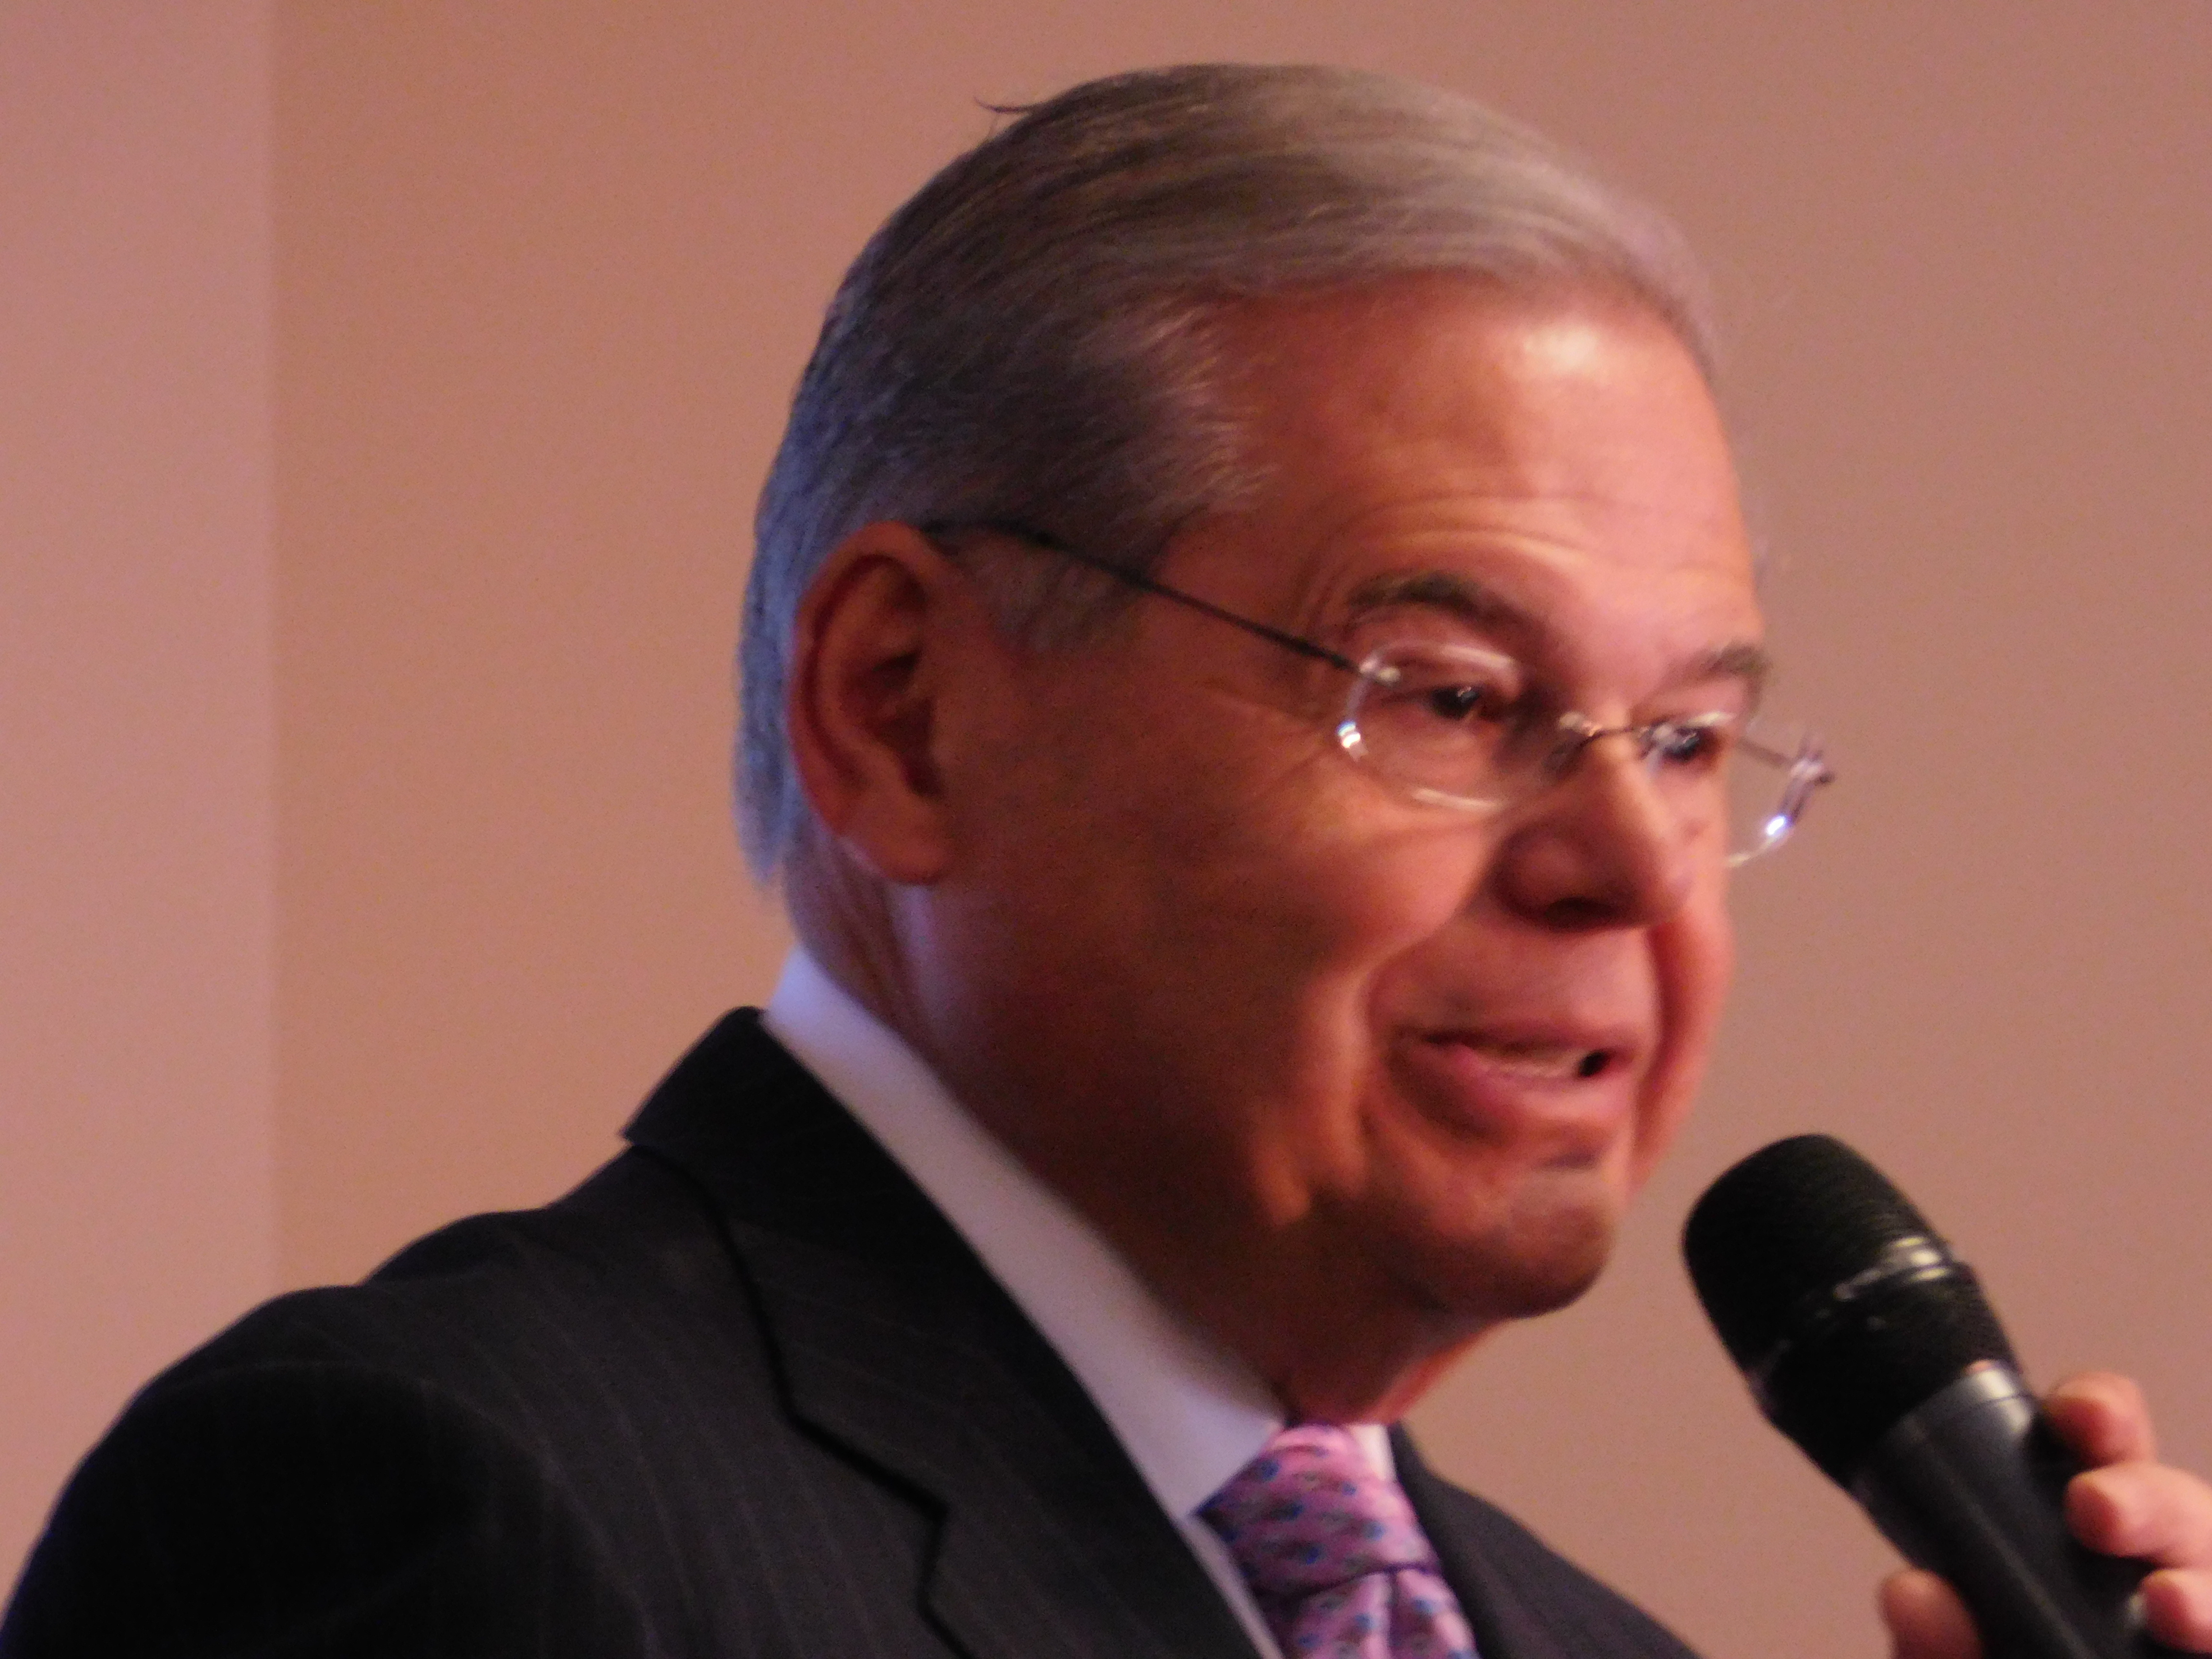 Menendez asks voters to vote for Hillary Clinton.